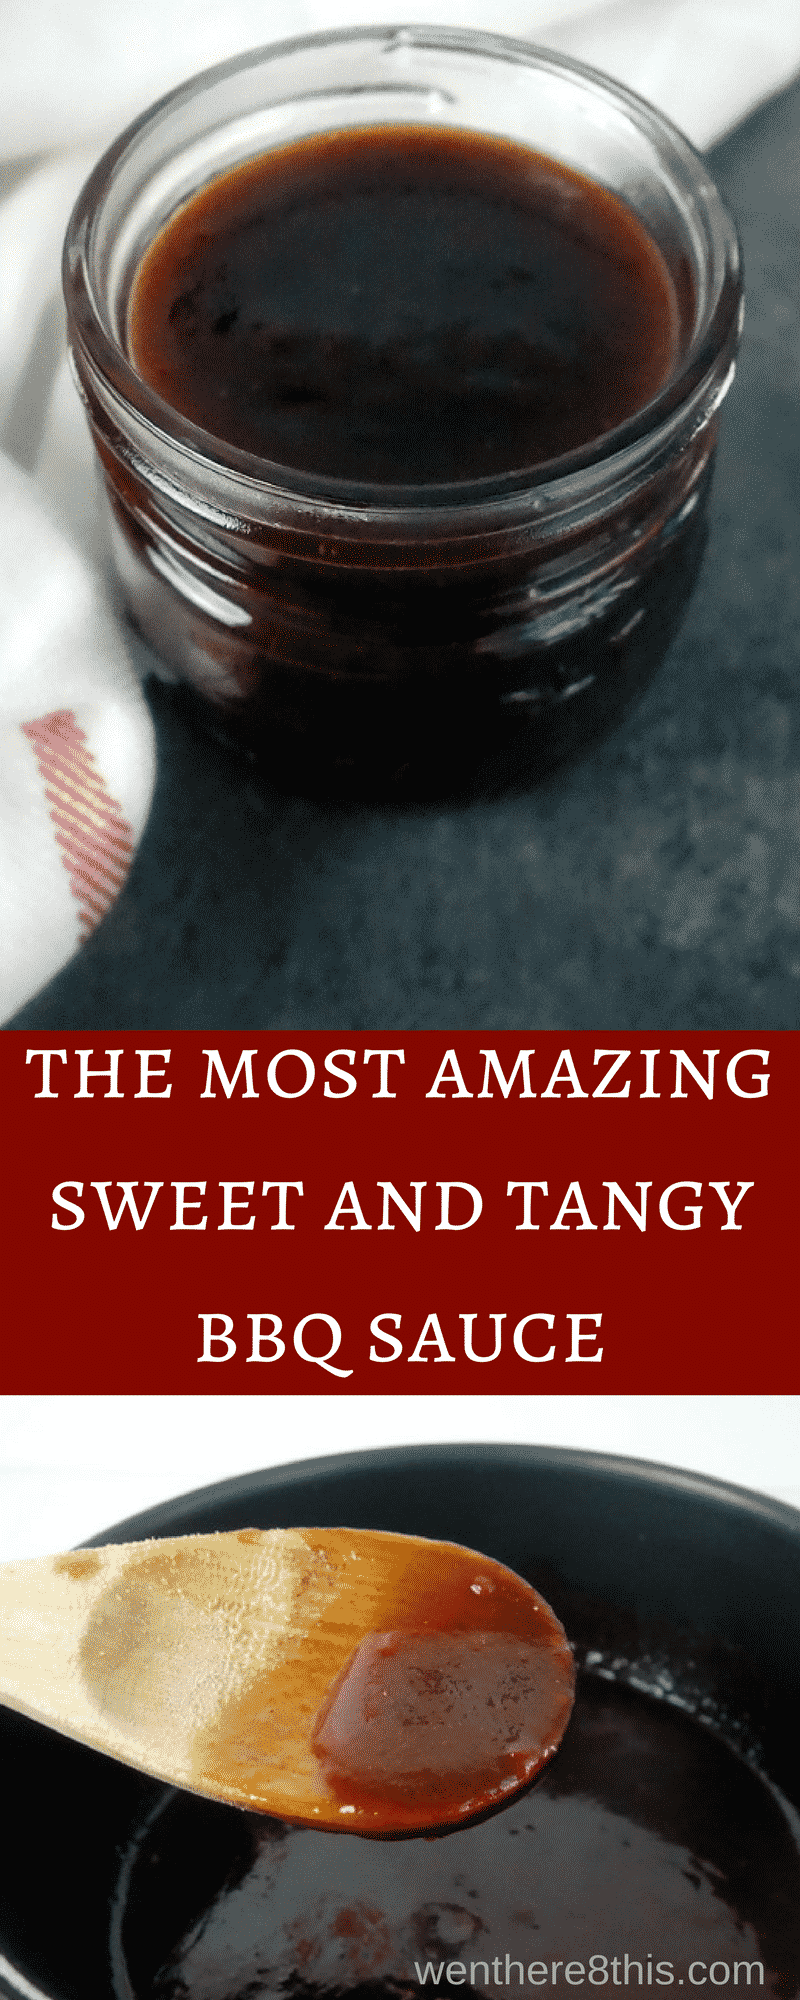 This smoky sweet and tangy barbecue sauce recipe is super simple to make, with only 7 ingredients and a cook time of 5 minutes. You'll never use another sauce!homemade BBQ sauce | best BBQ sauce | barbecue sauce recipe | sweet BB sauce | tangy BBQ sauce | easy barbecue sauce | how to make barbecue sauce | brown sugar BBQ sauce | southern BBQ sauce | BBQ sauce for ribs | BBQ sauce for chicken